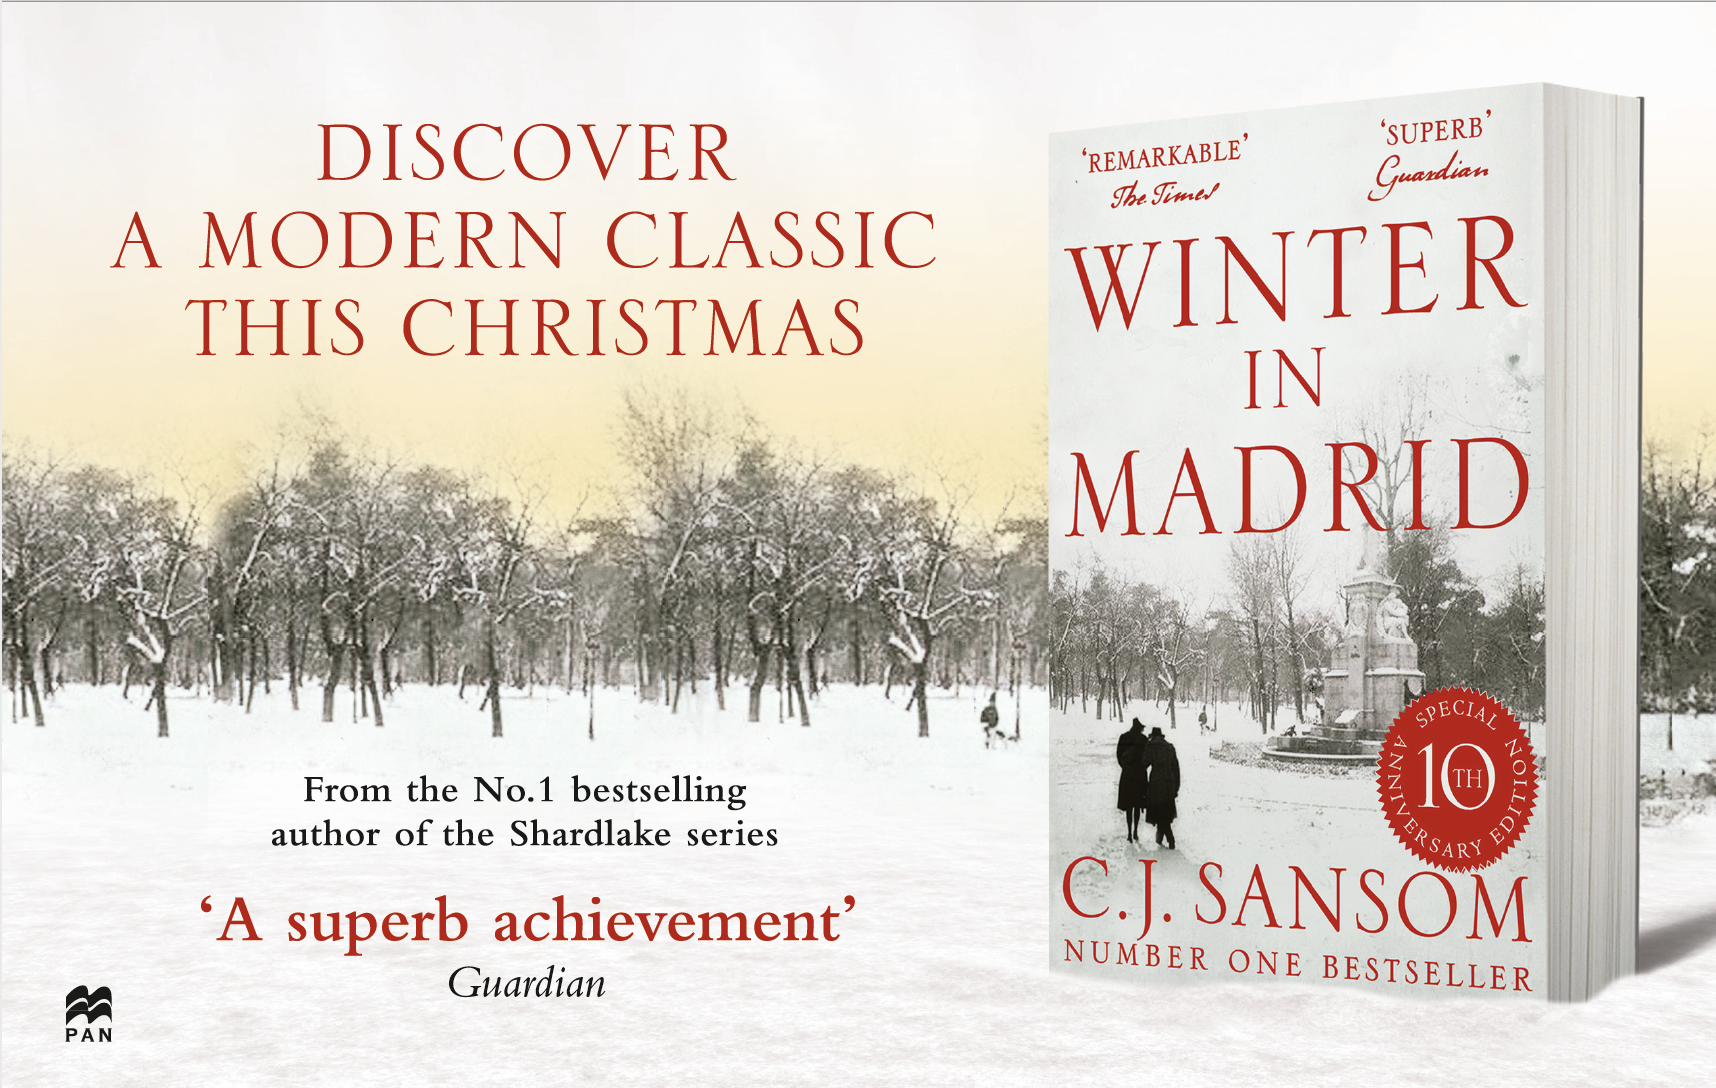 Winter In Madrid advert